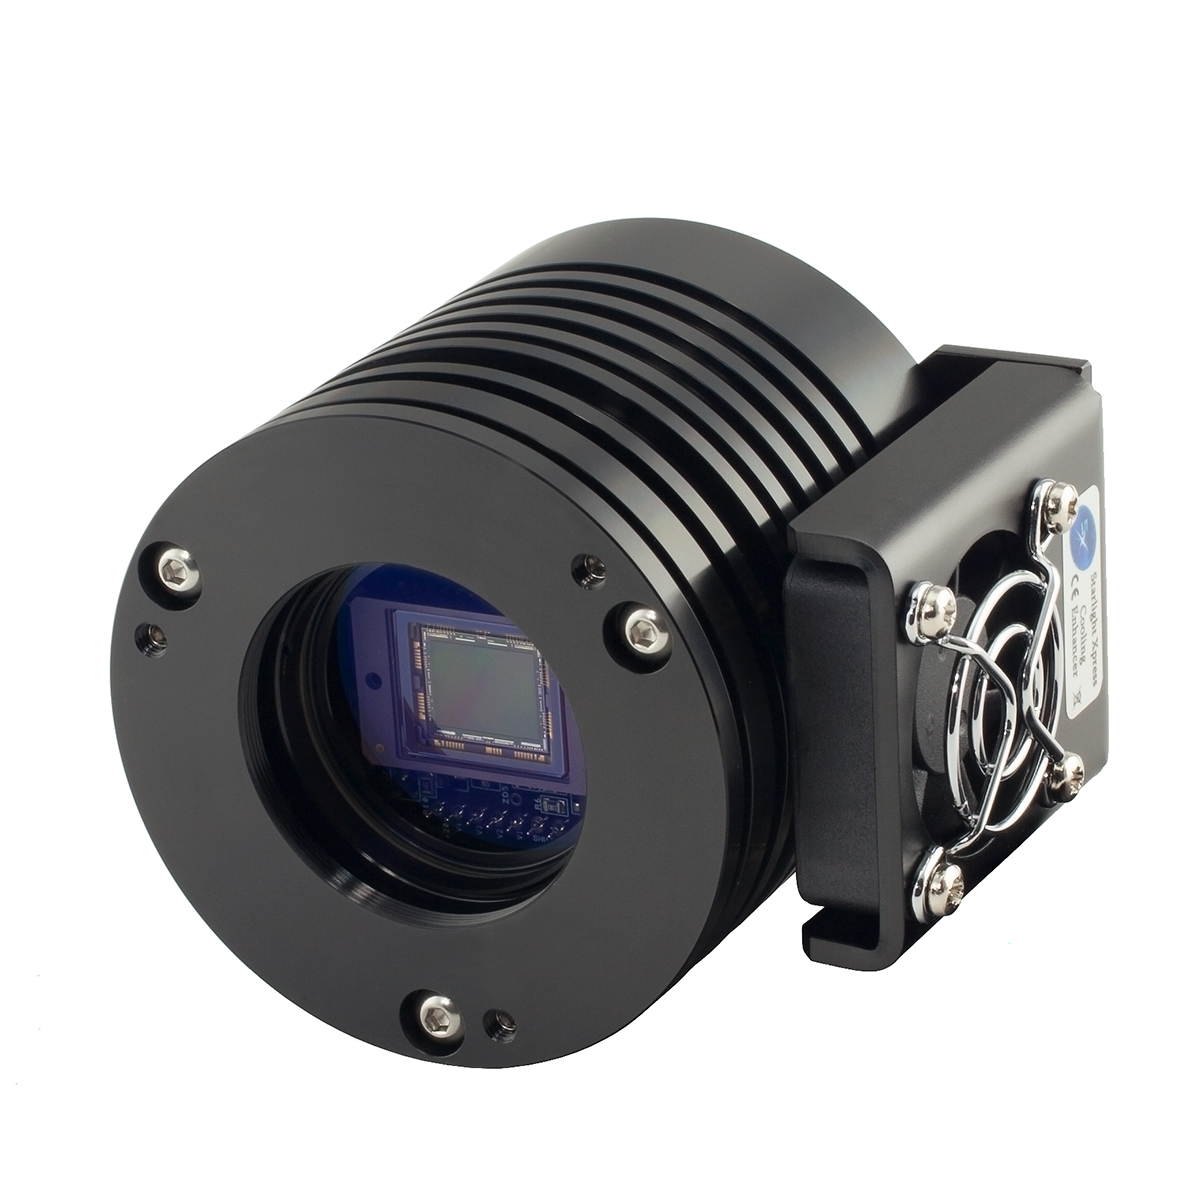 Starlight Xpress Trius PRO 814 Mono CCD Camera